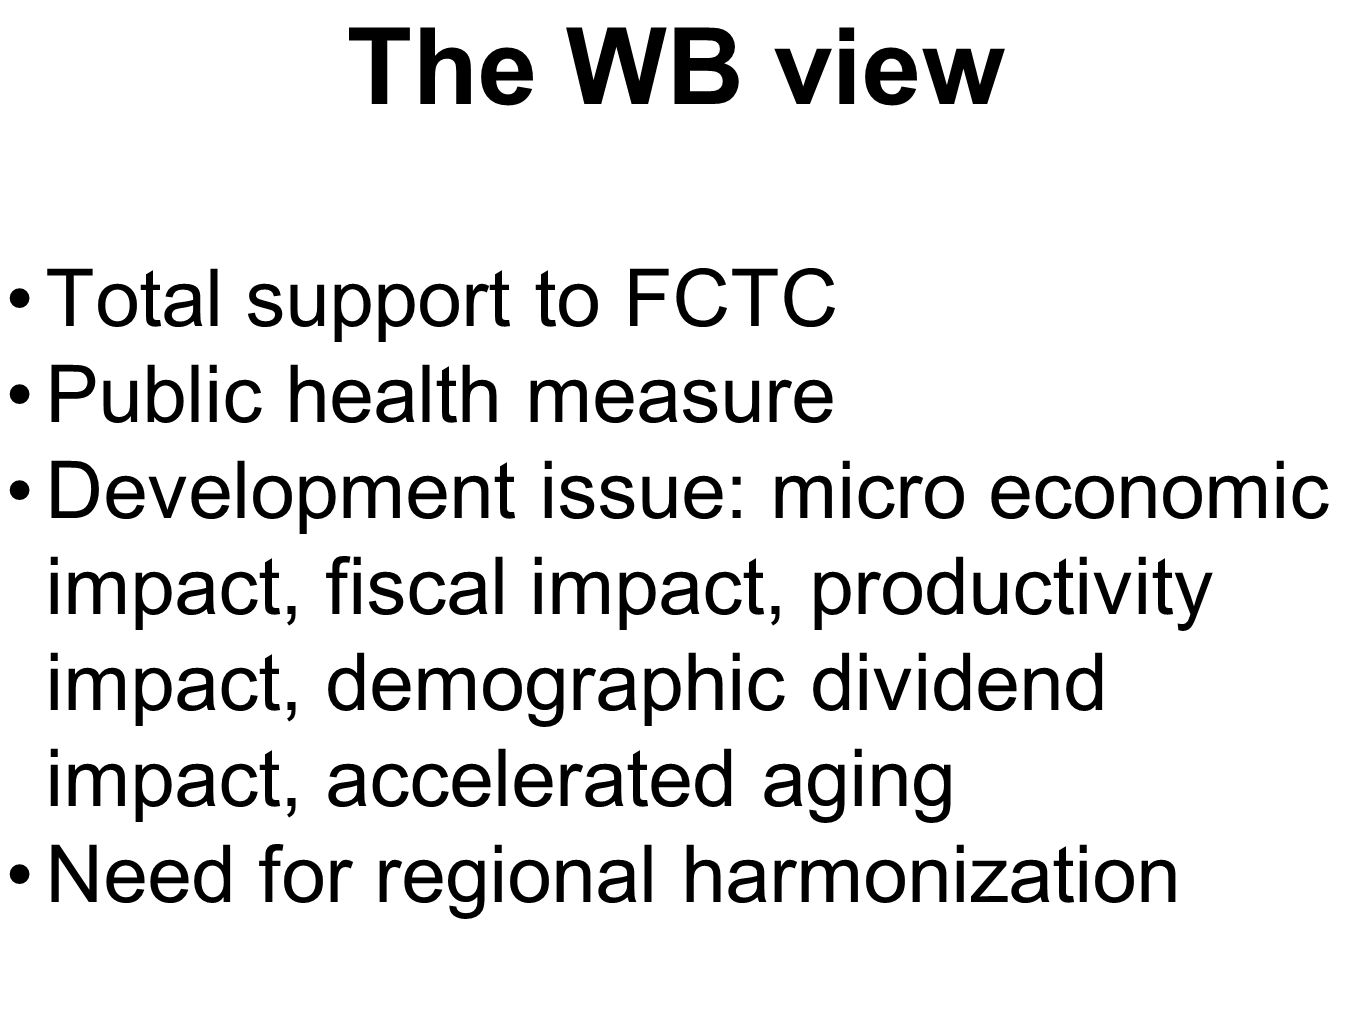 The WB view Total support to FCTC Public health measure Development issue: micro economic impact, fiscal impact, productivity impact, demographic dividend impact, accelerated aging Need for regional harmonization